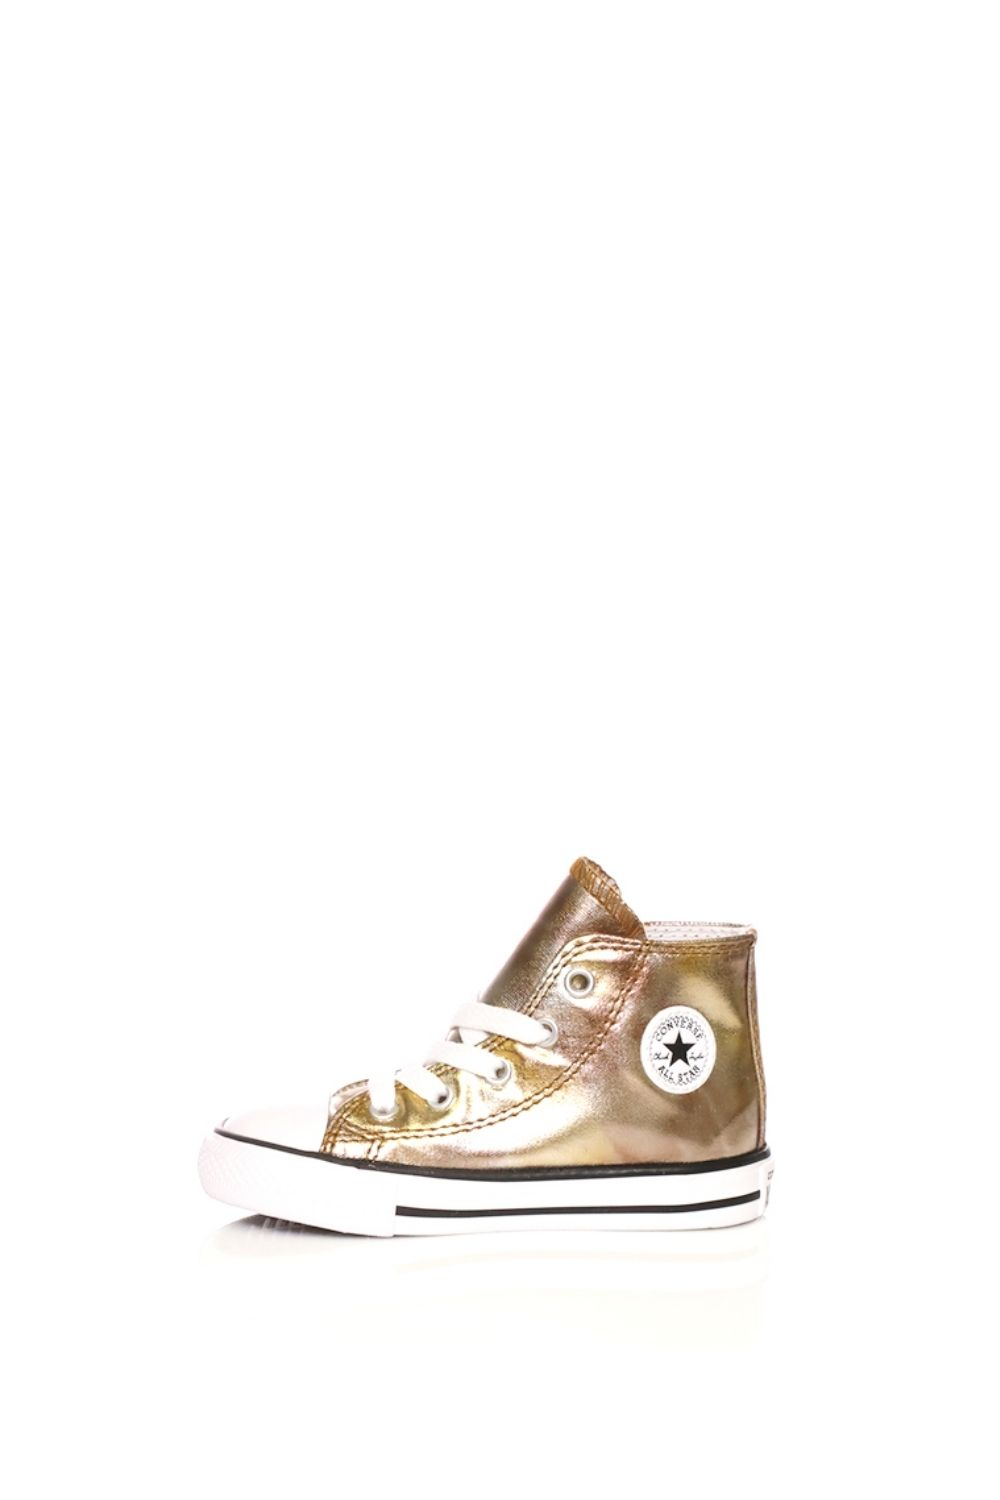 -48% Collective Online CONVERSE – Βρεφικά sneakers CONVERSE Chuck Taylor  All Star Hi χρυσά 02bf2883f9a